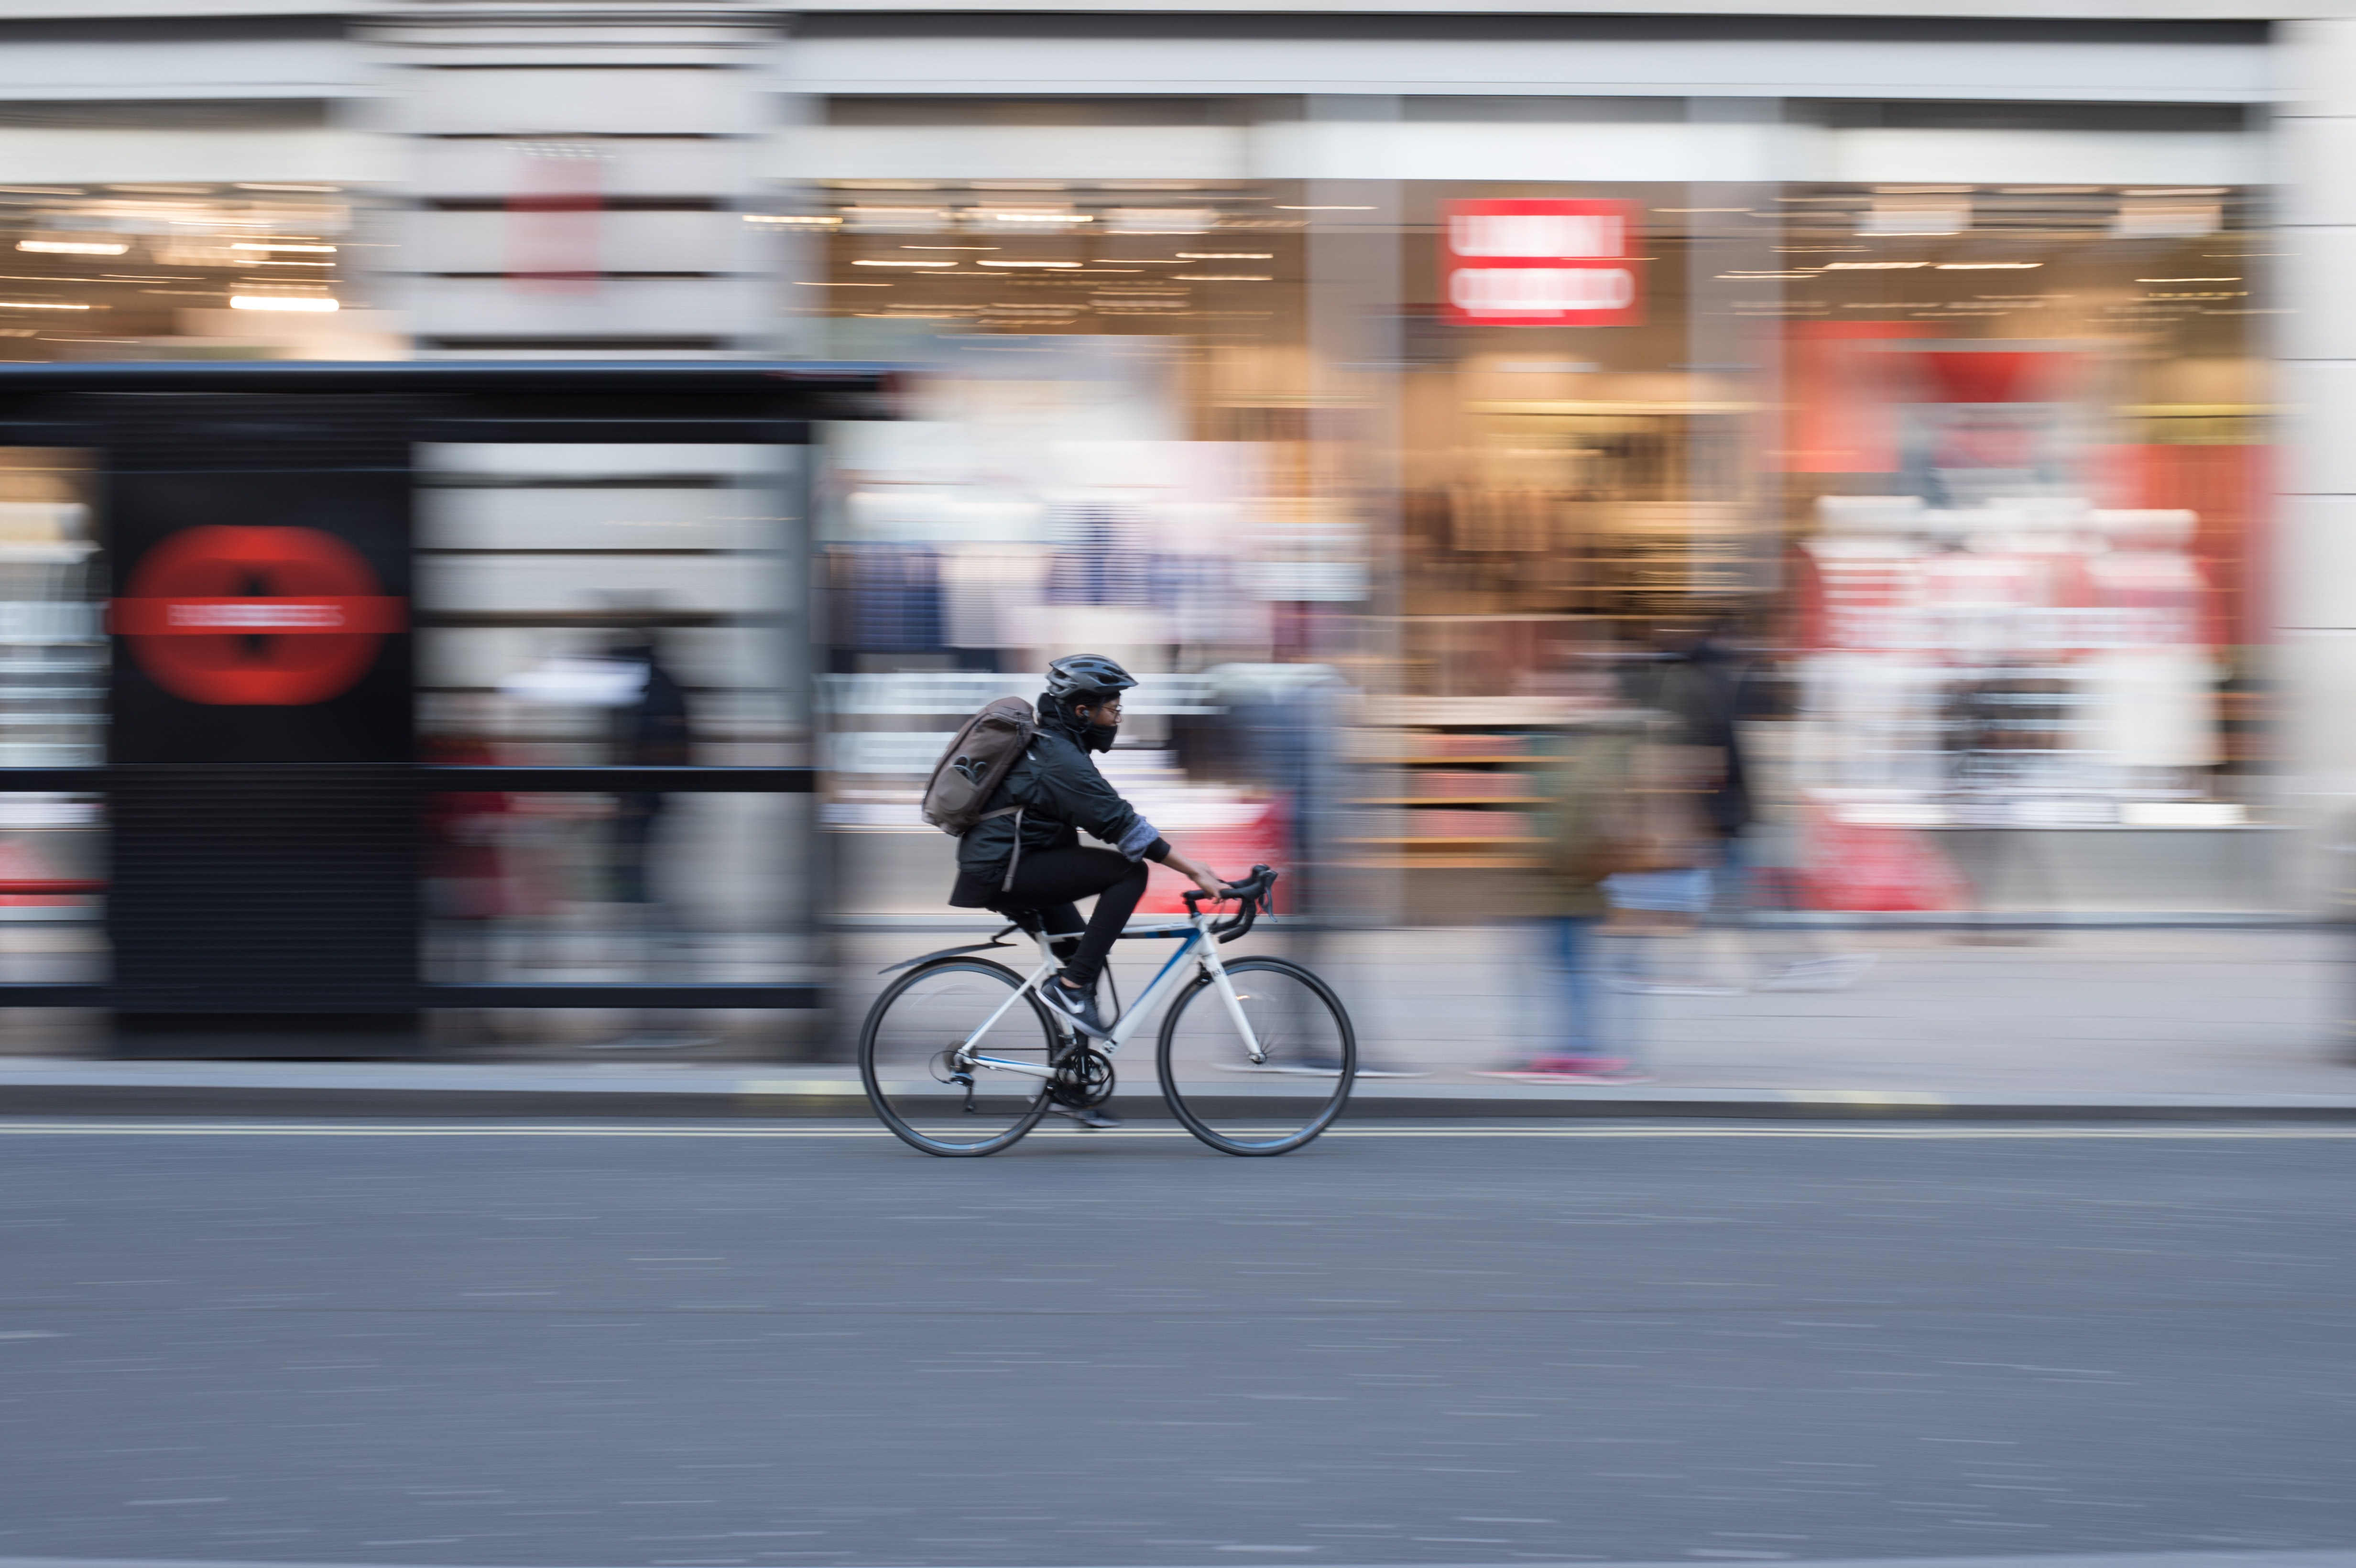 time lapse photo of person riding on white road bicycle